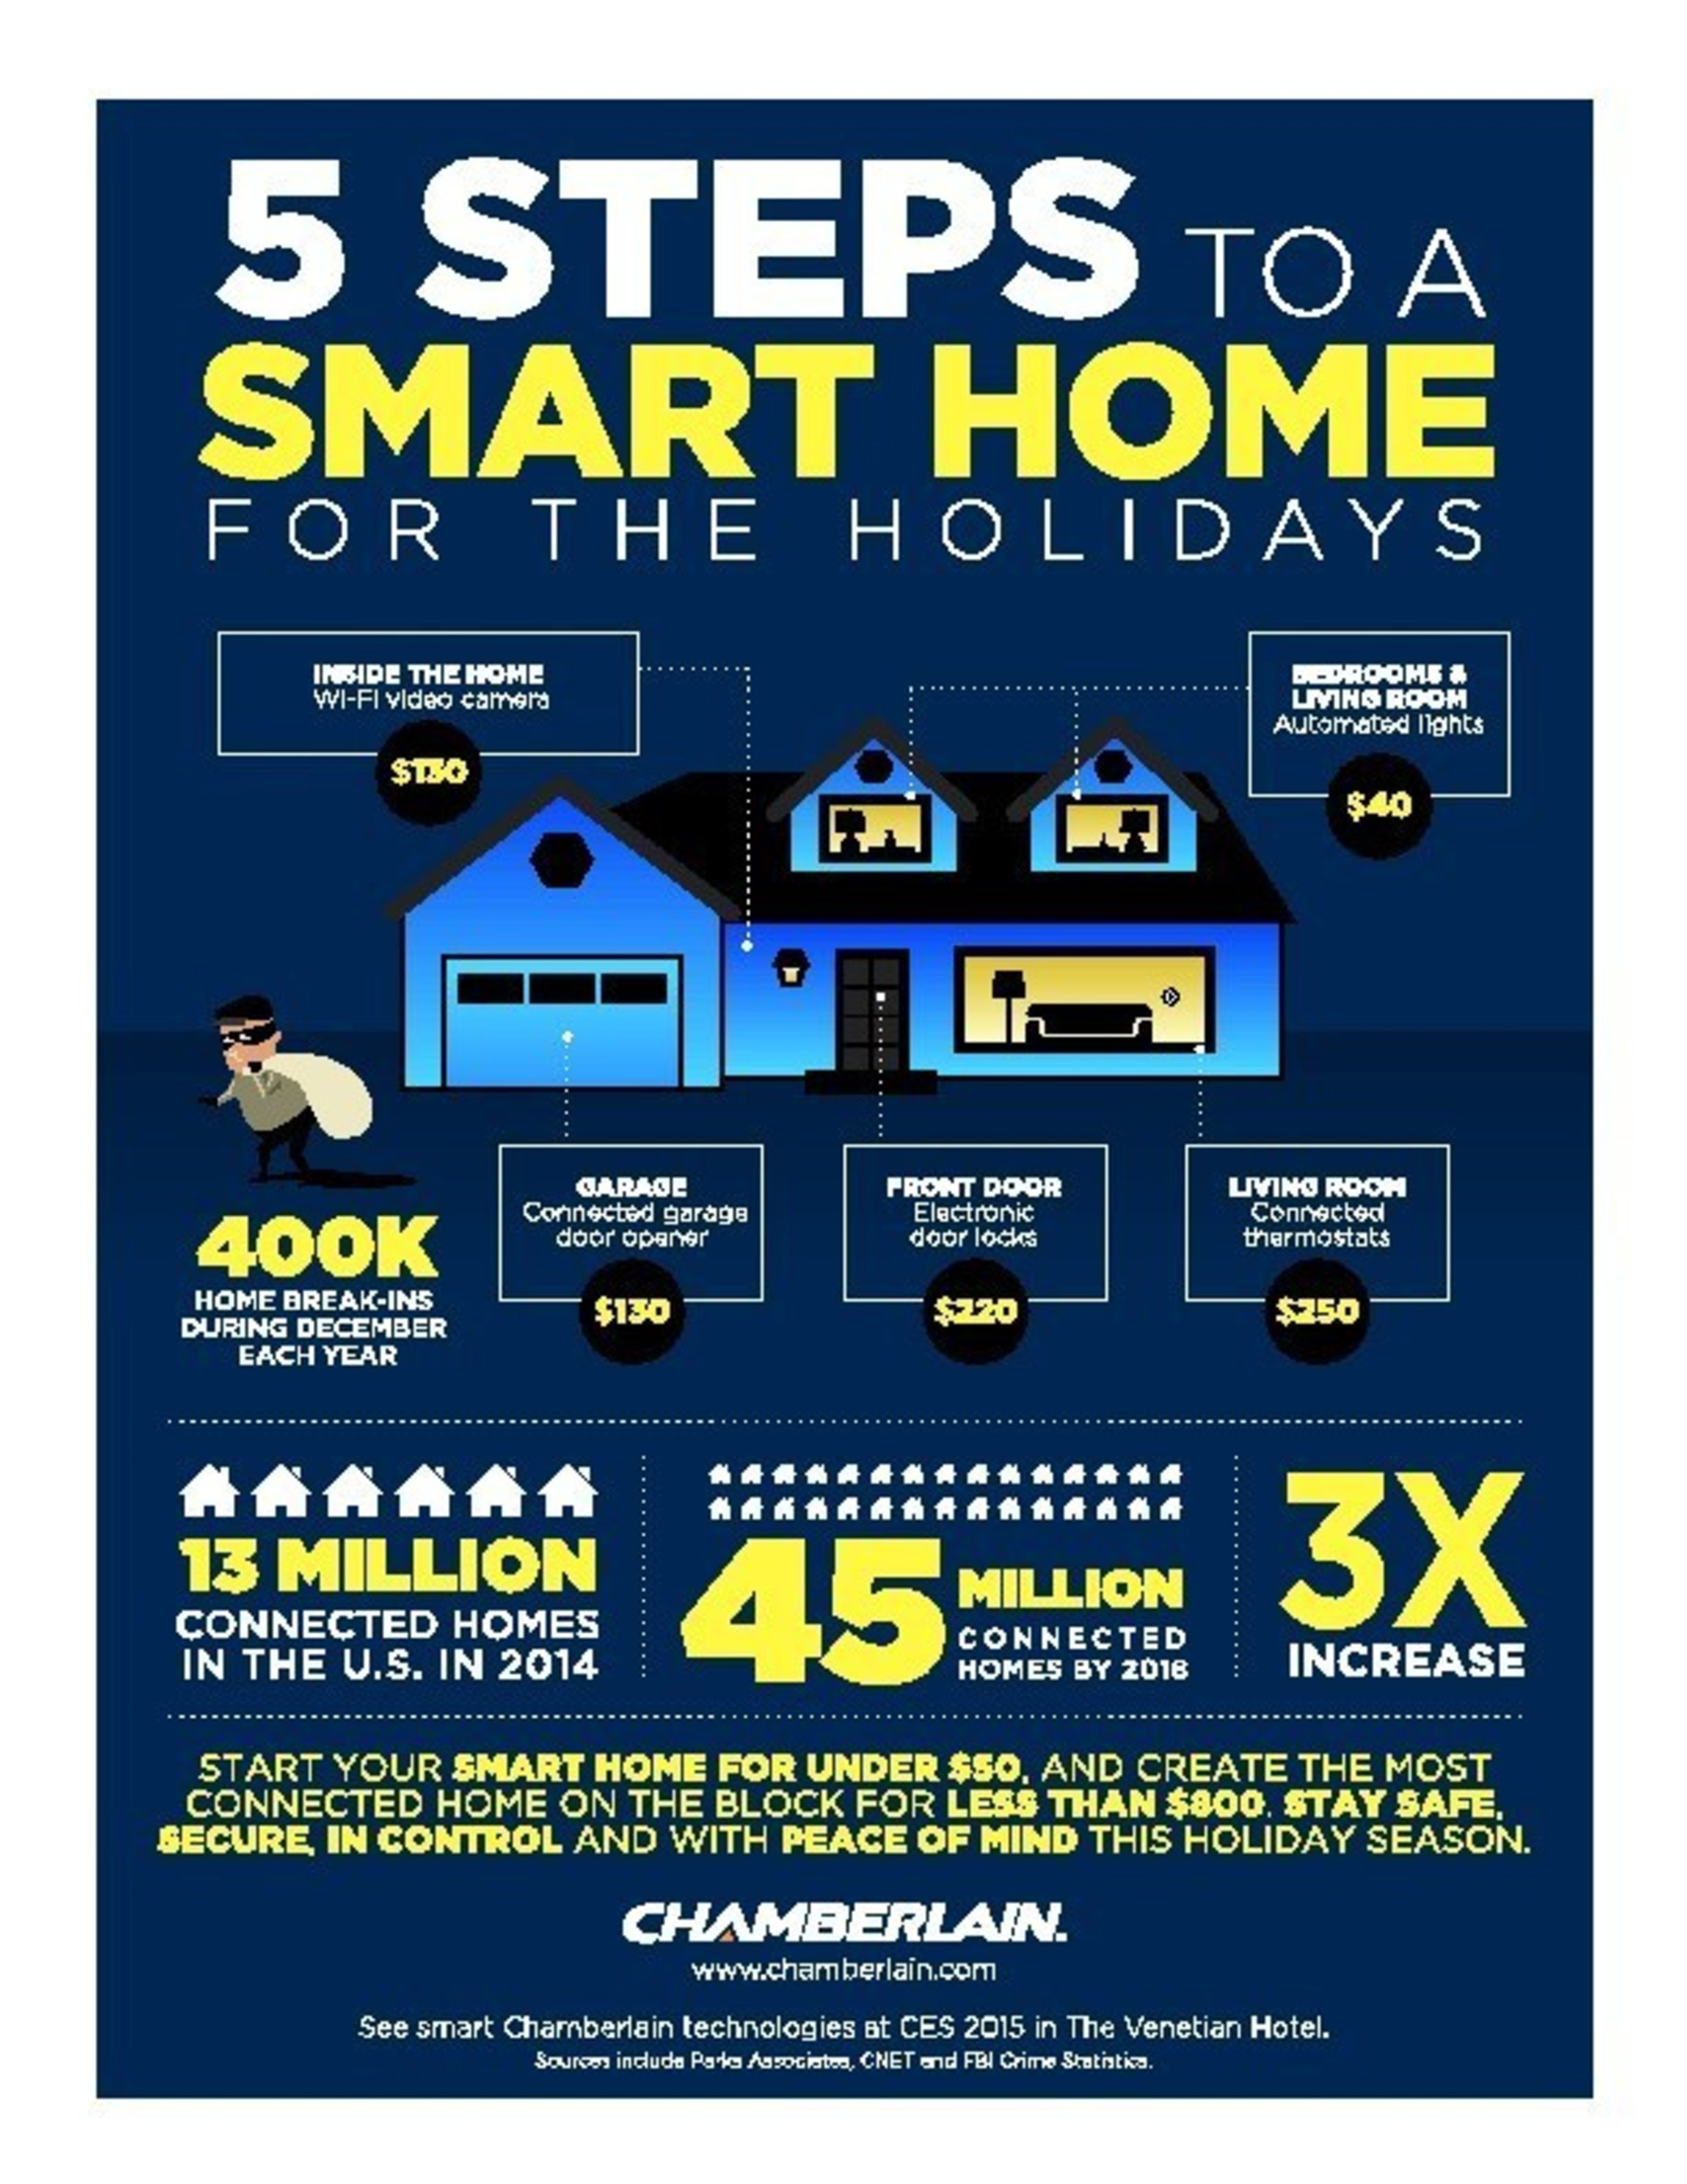 Create or gift a smart home this holiday for as little as $50 and a few minutes of time. Chamberlain shows you ...